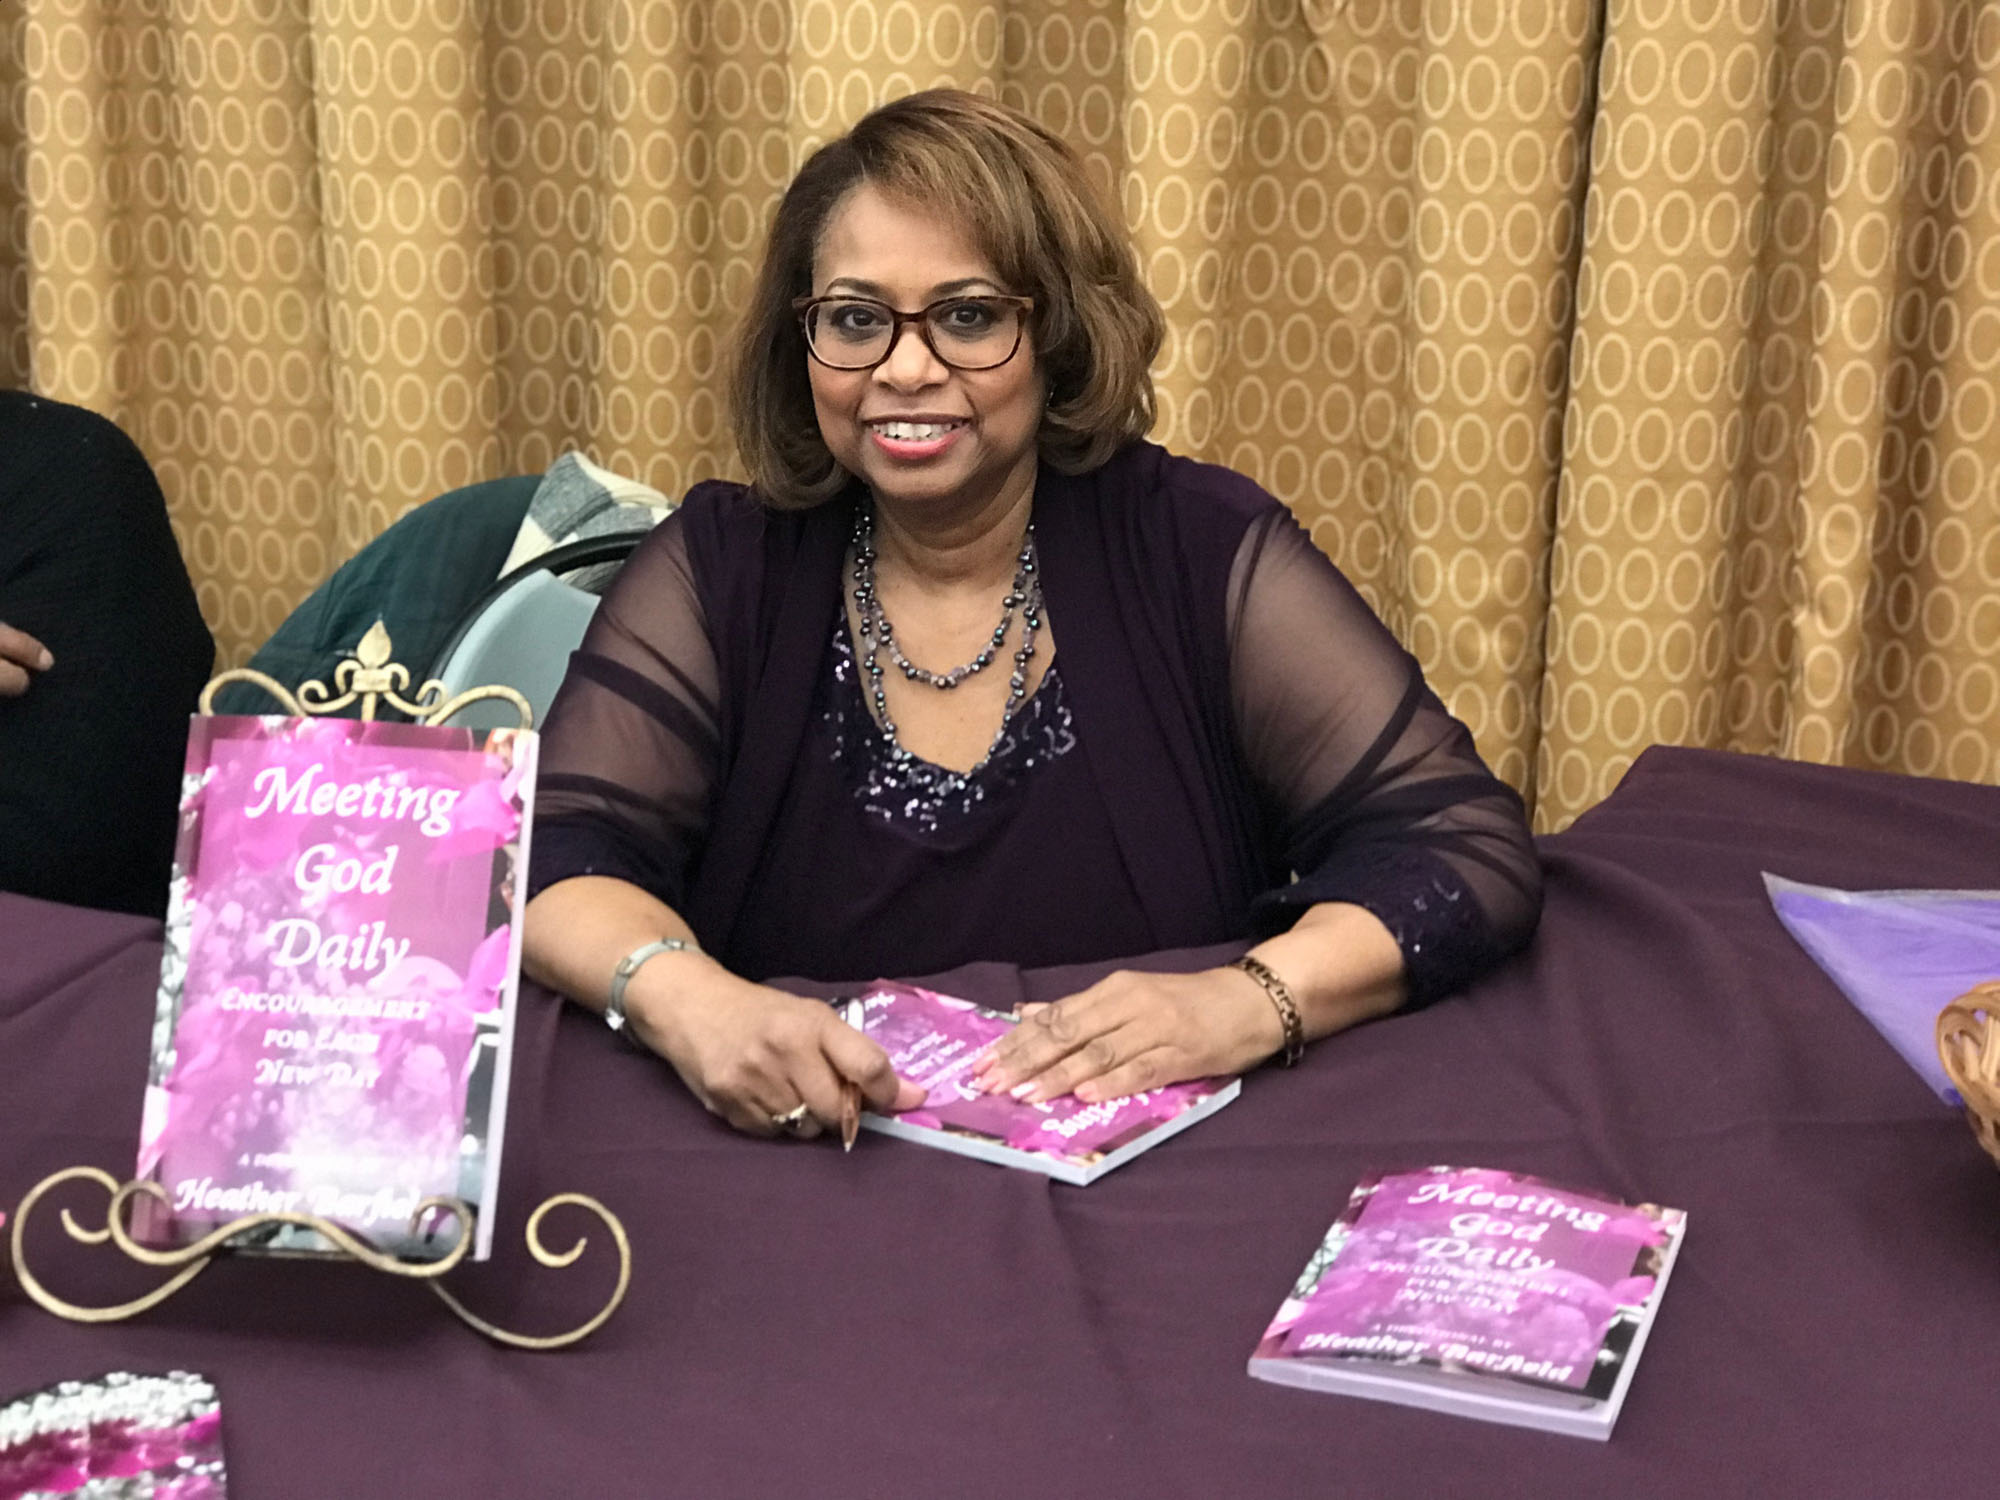 heather-barfield-devotional-book-signing (1 of 1).jpg